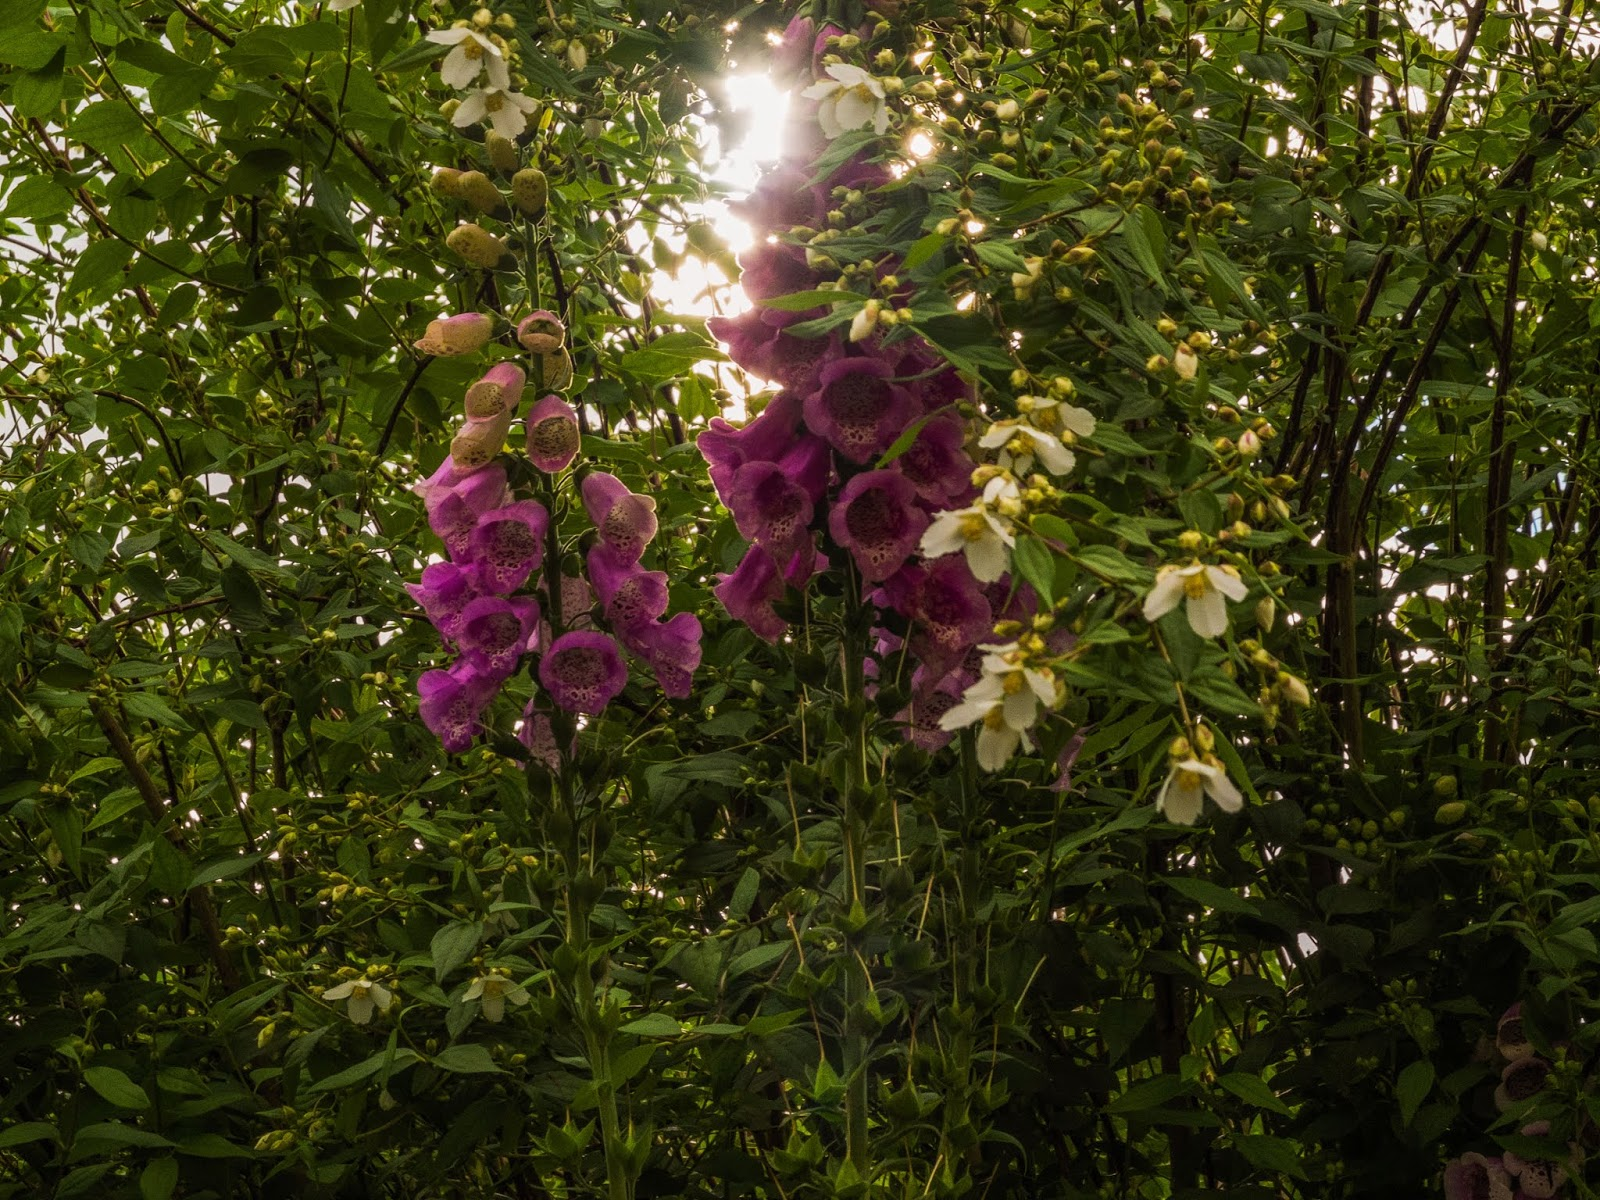 Pink foxgloves at sunset in front of a Jasmine bush.